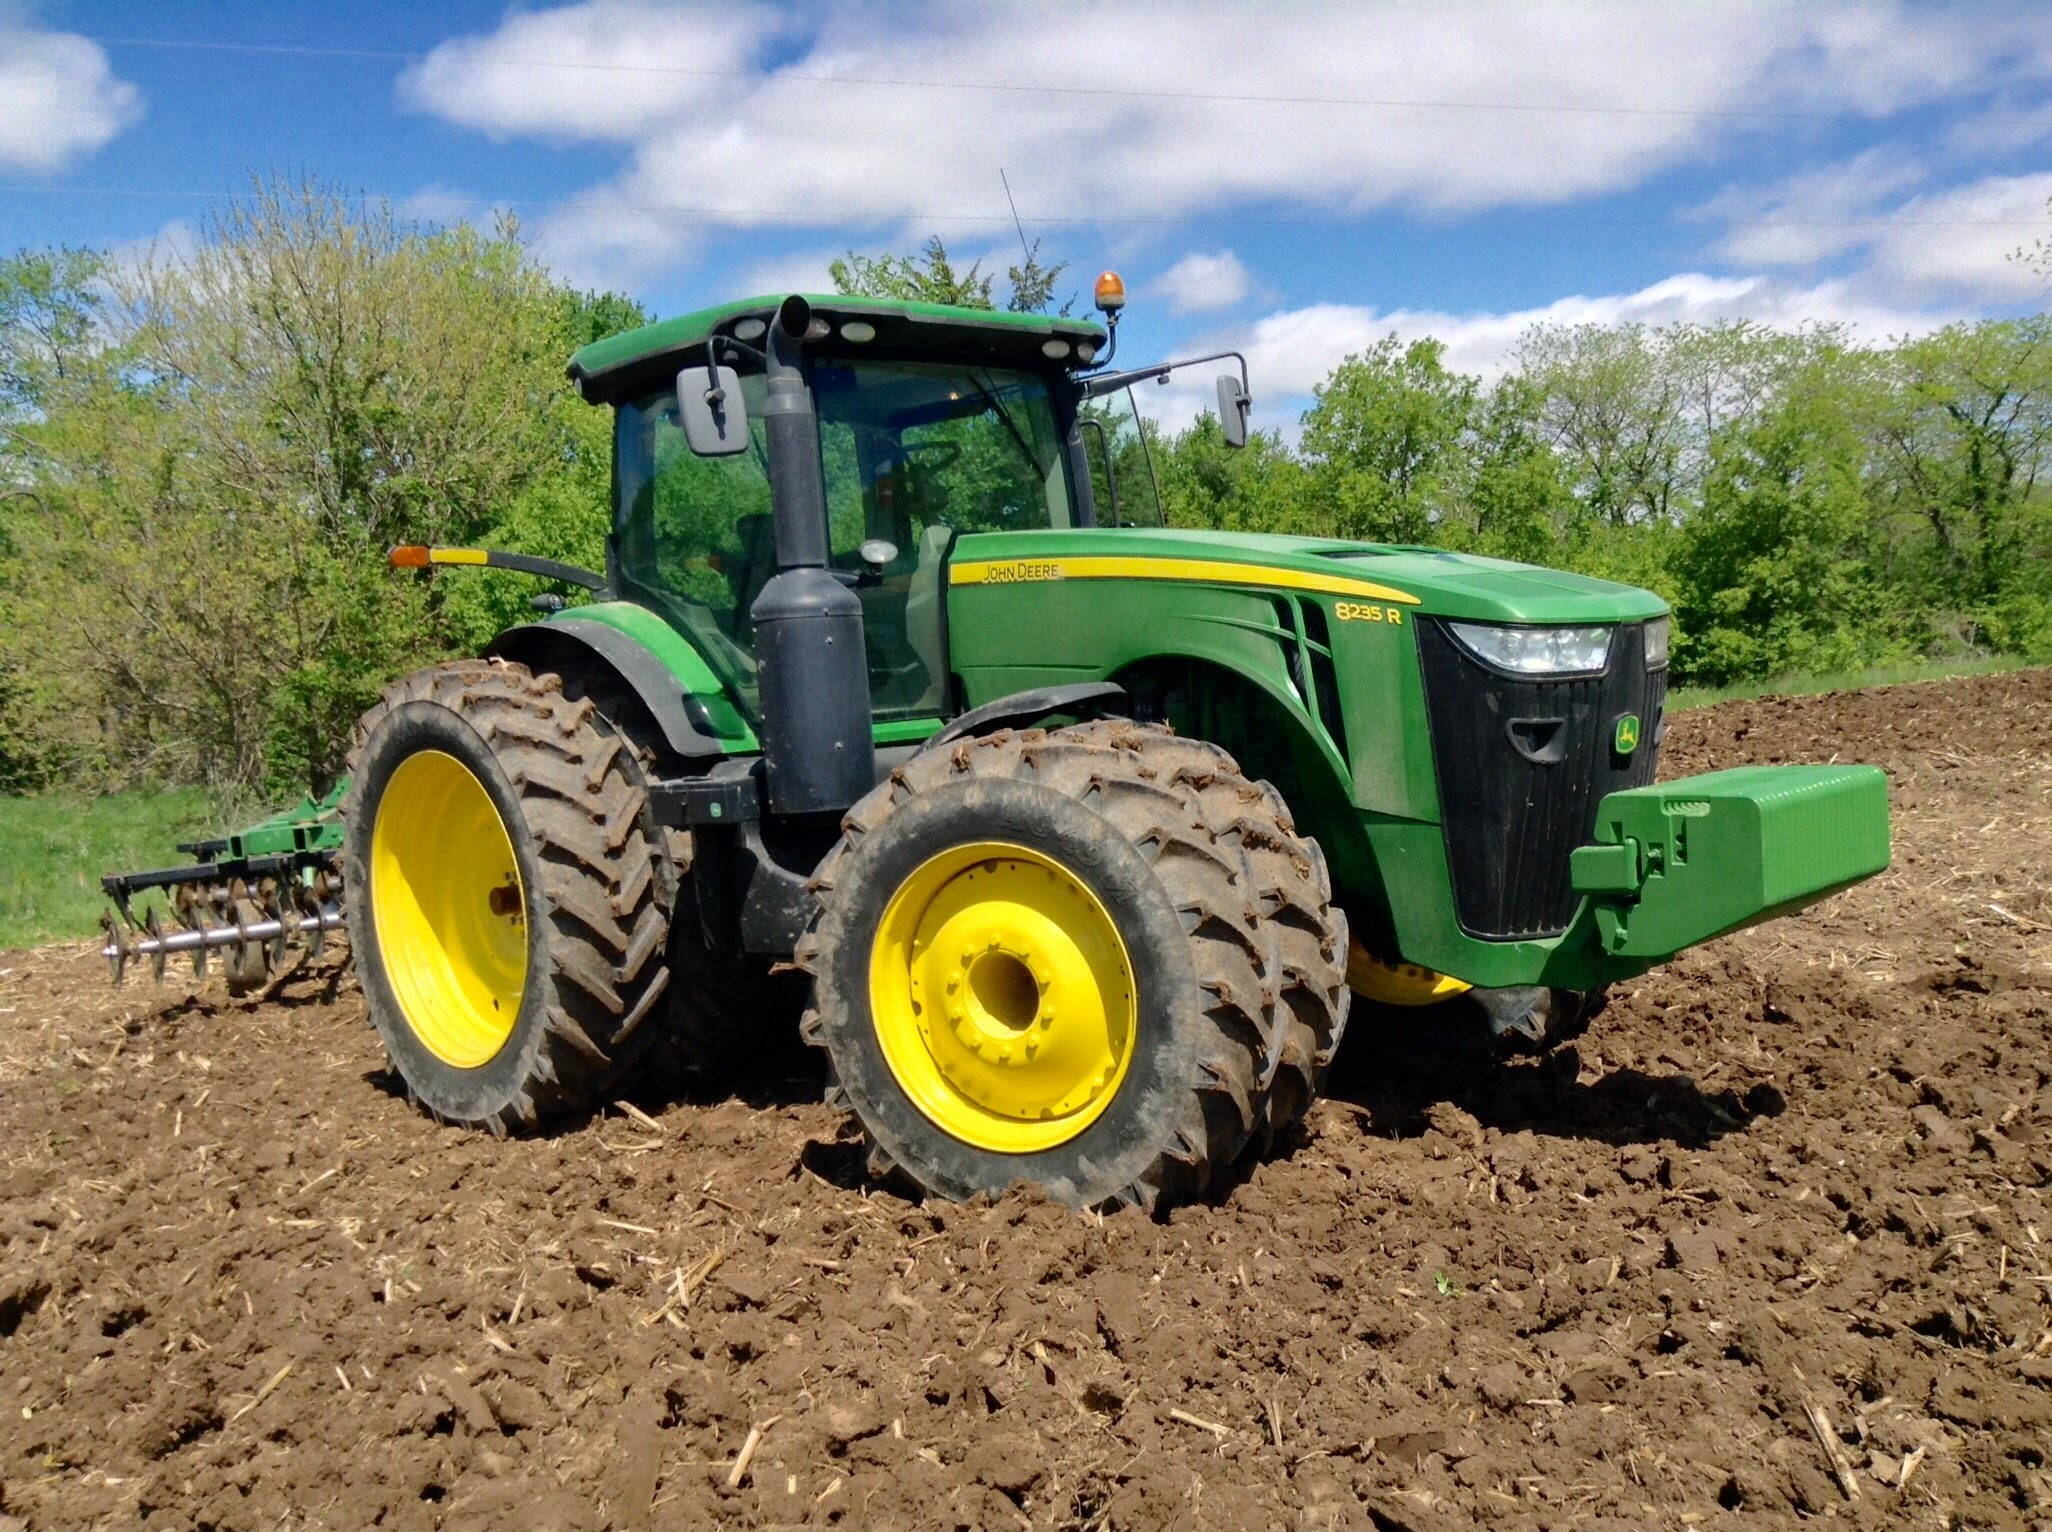 How to Operate a Tractor - John Deere 8235R - YouTube